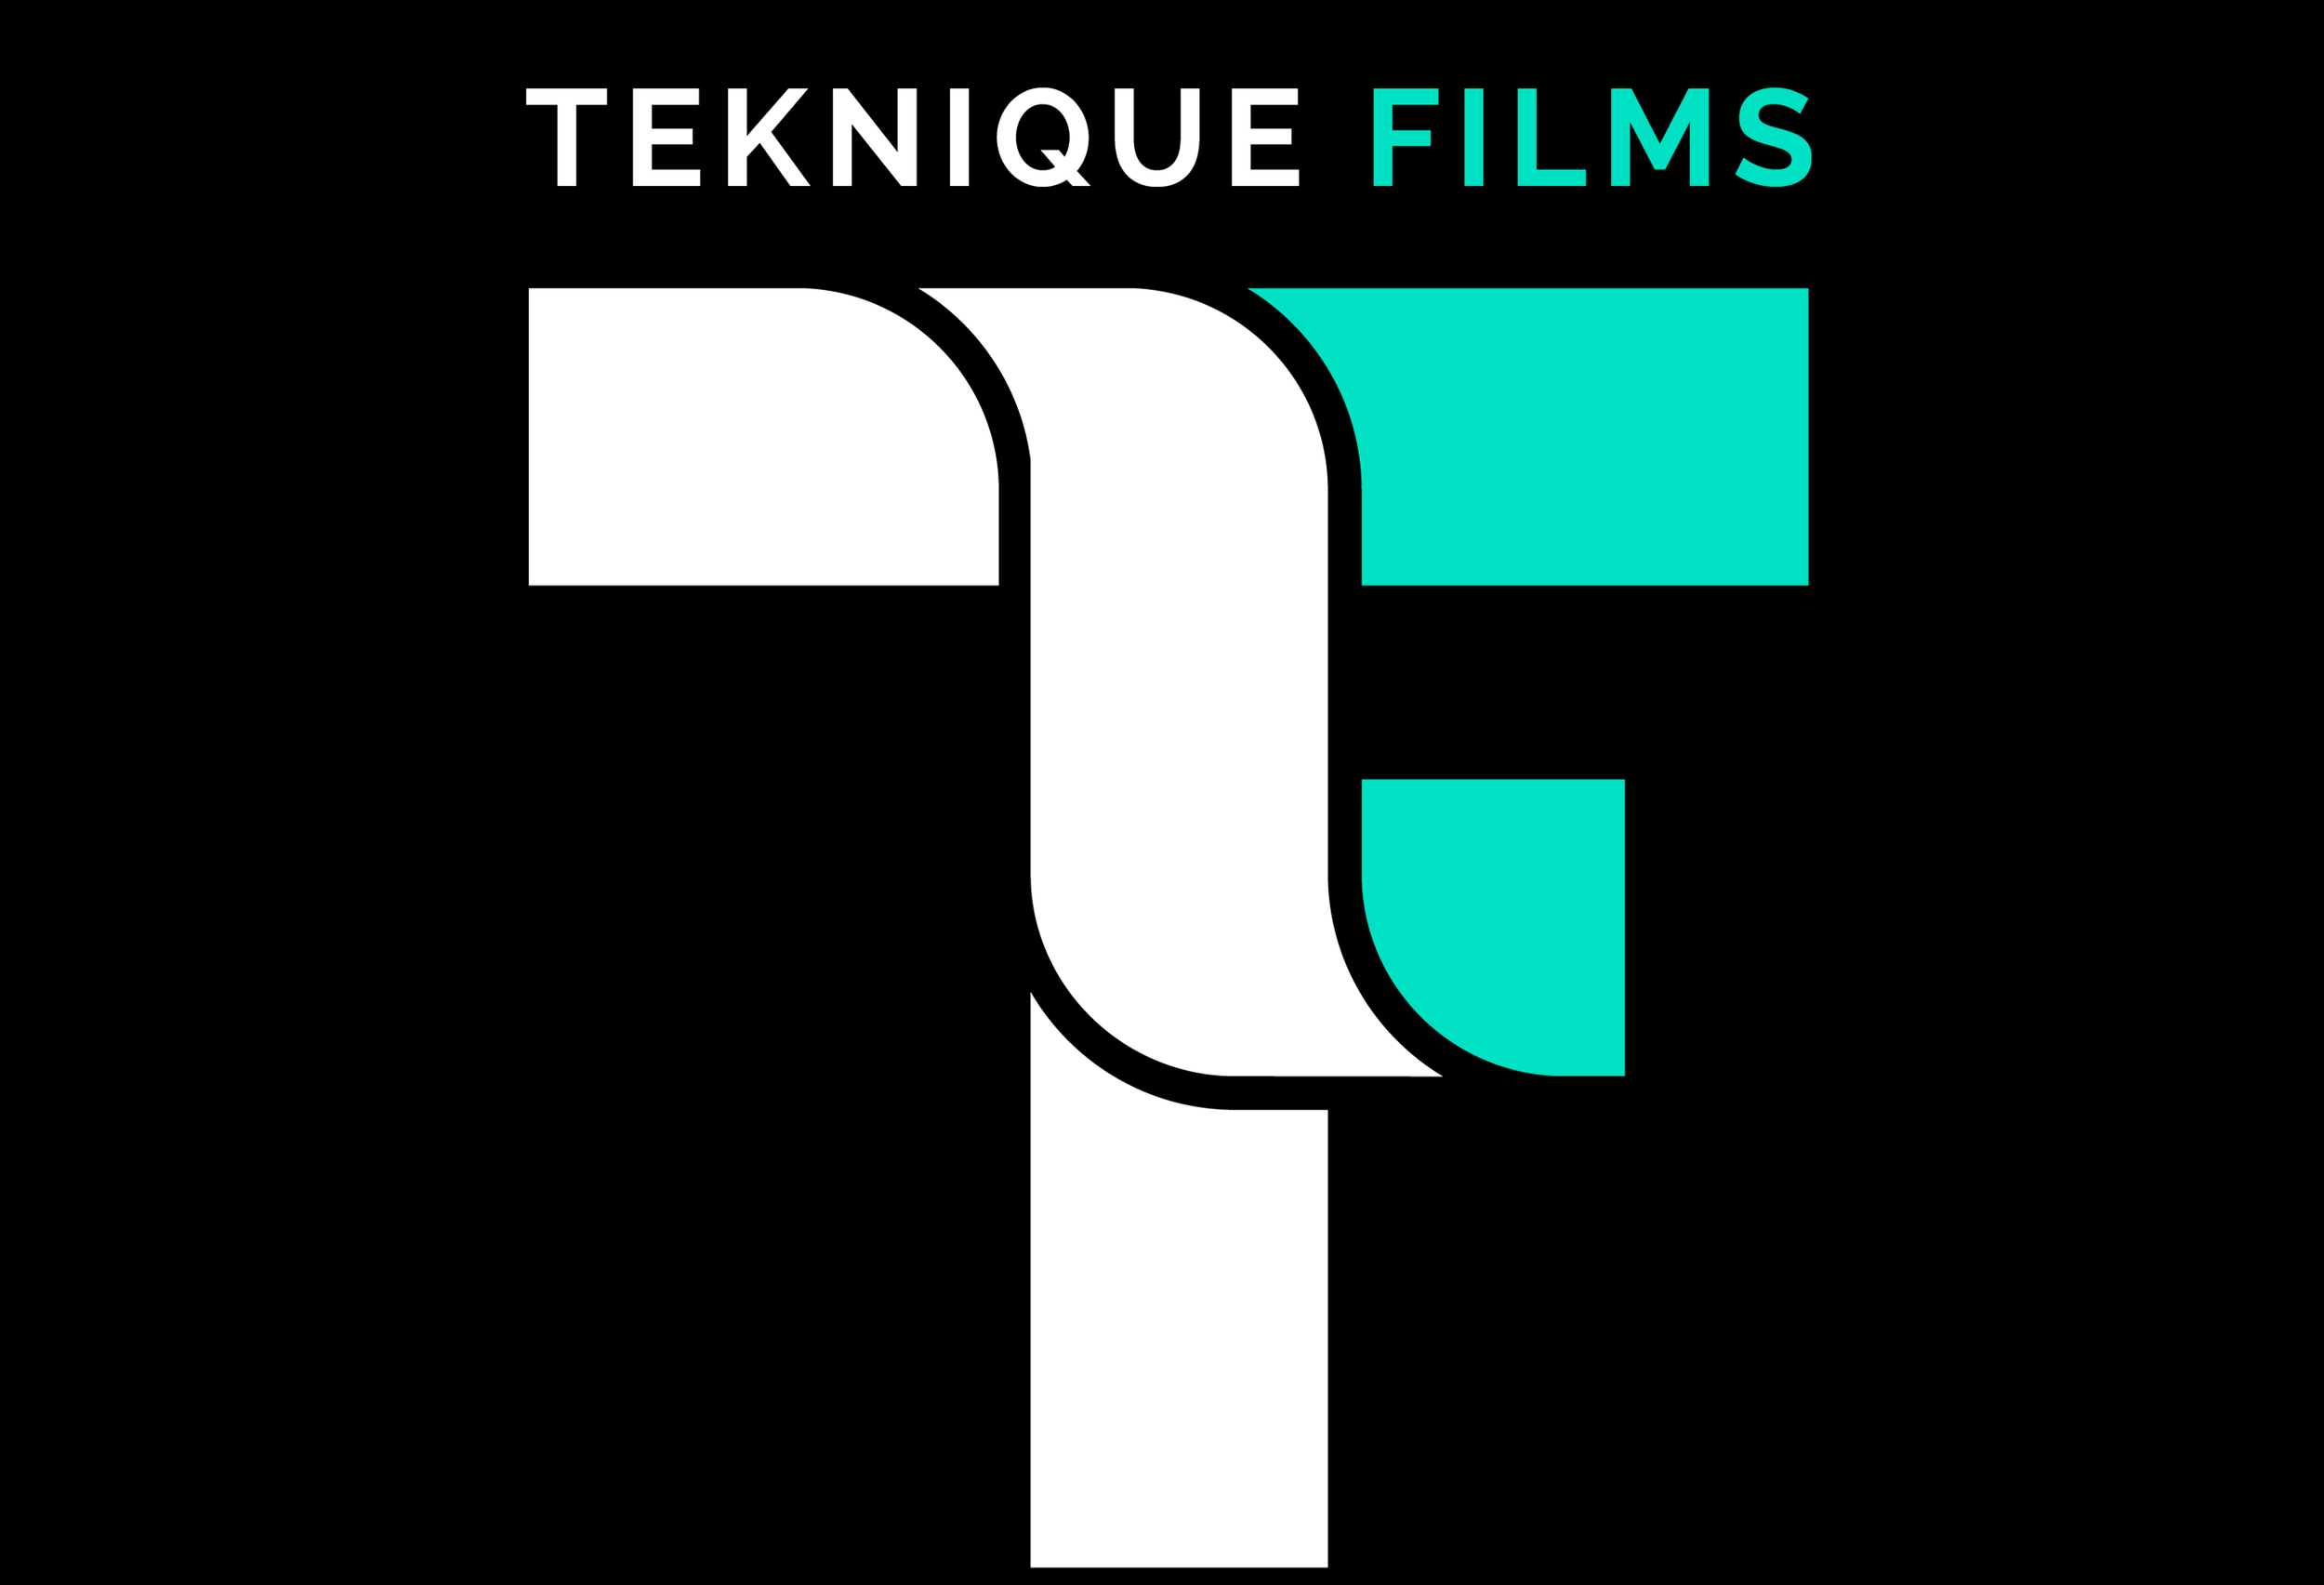 Click here for Teknique Films